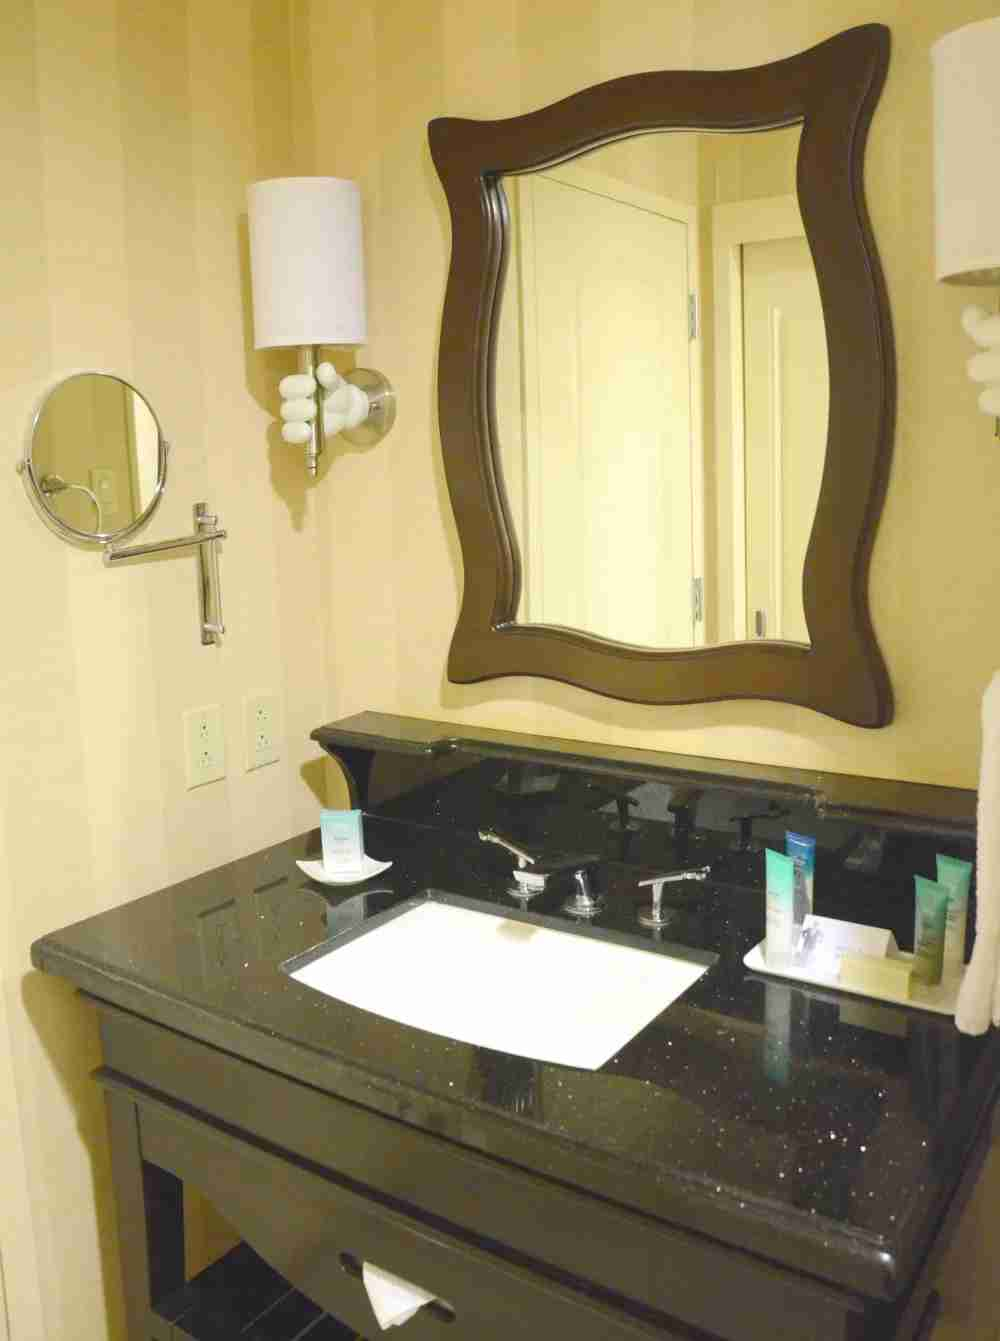 Disneyland Hotel Review - Bathroom Vanity